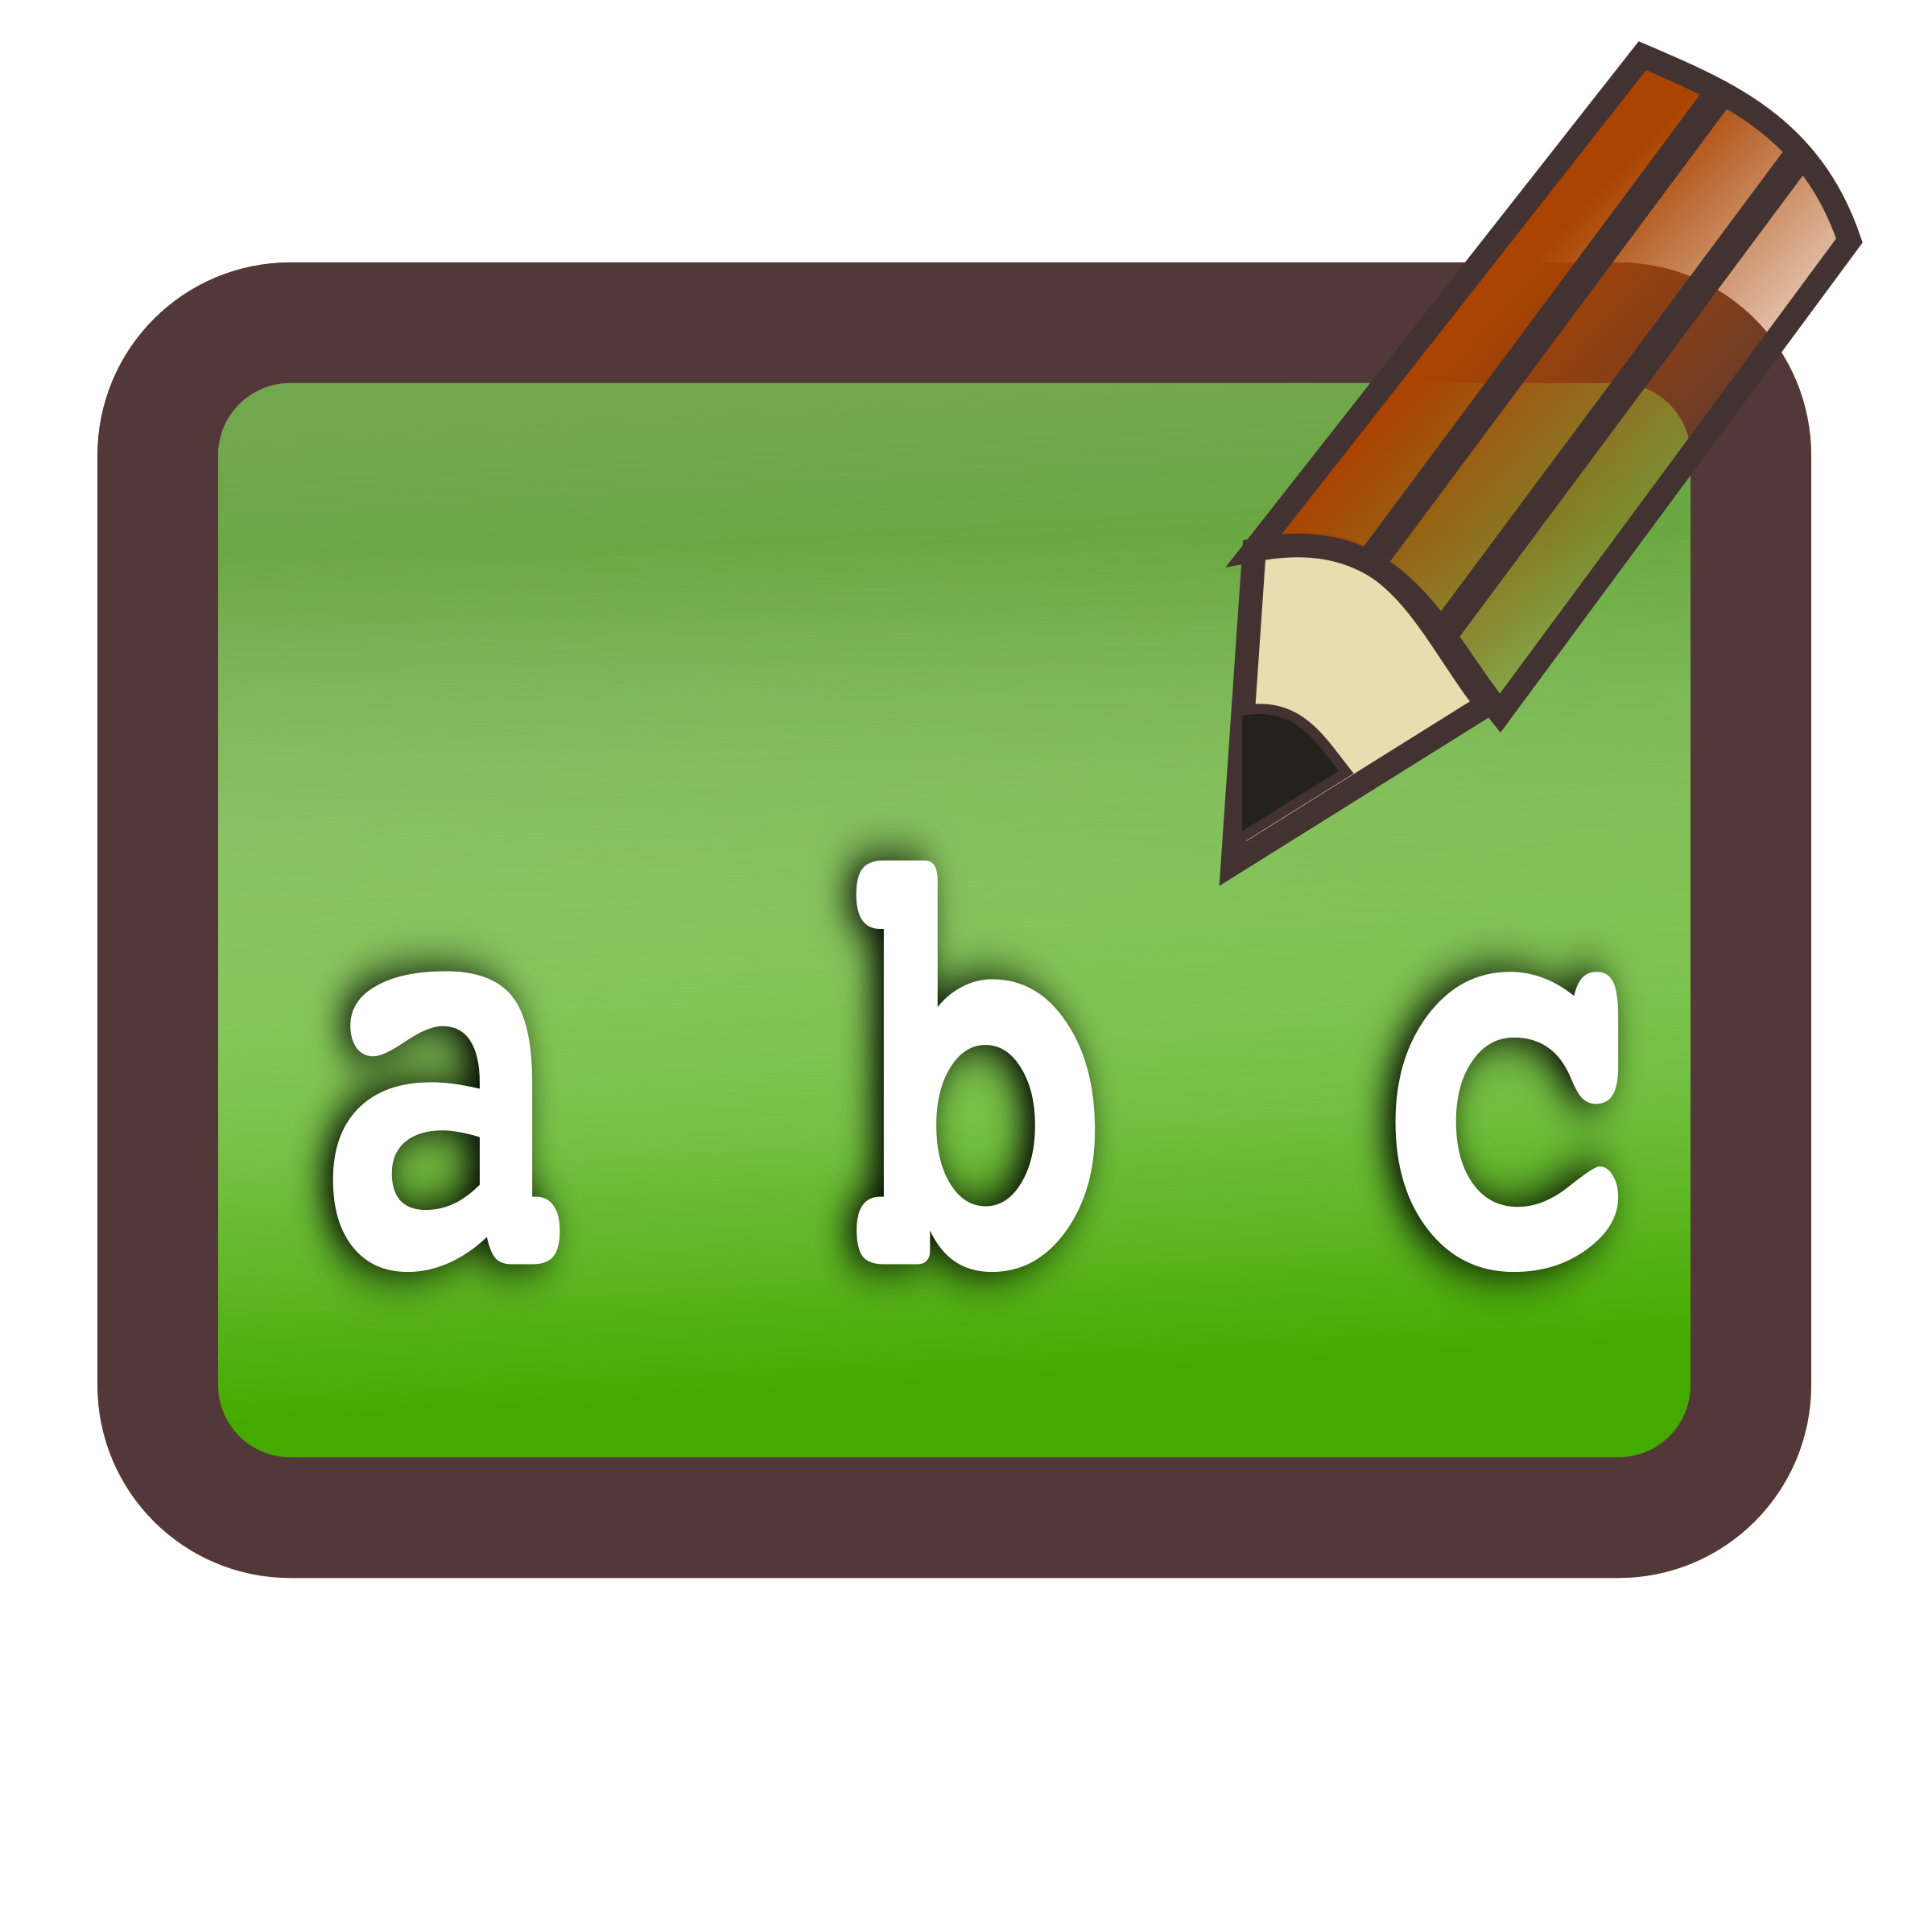 2400x2400 Nice Looking Education Clipart Clip Art Images Panda Free